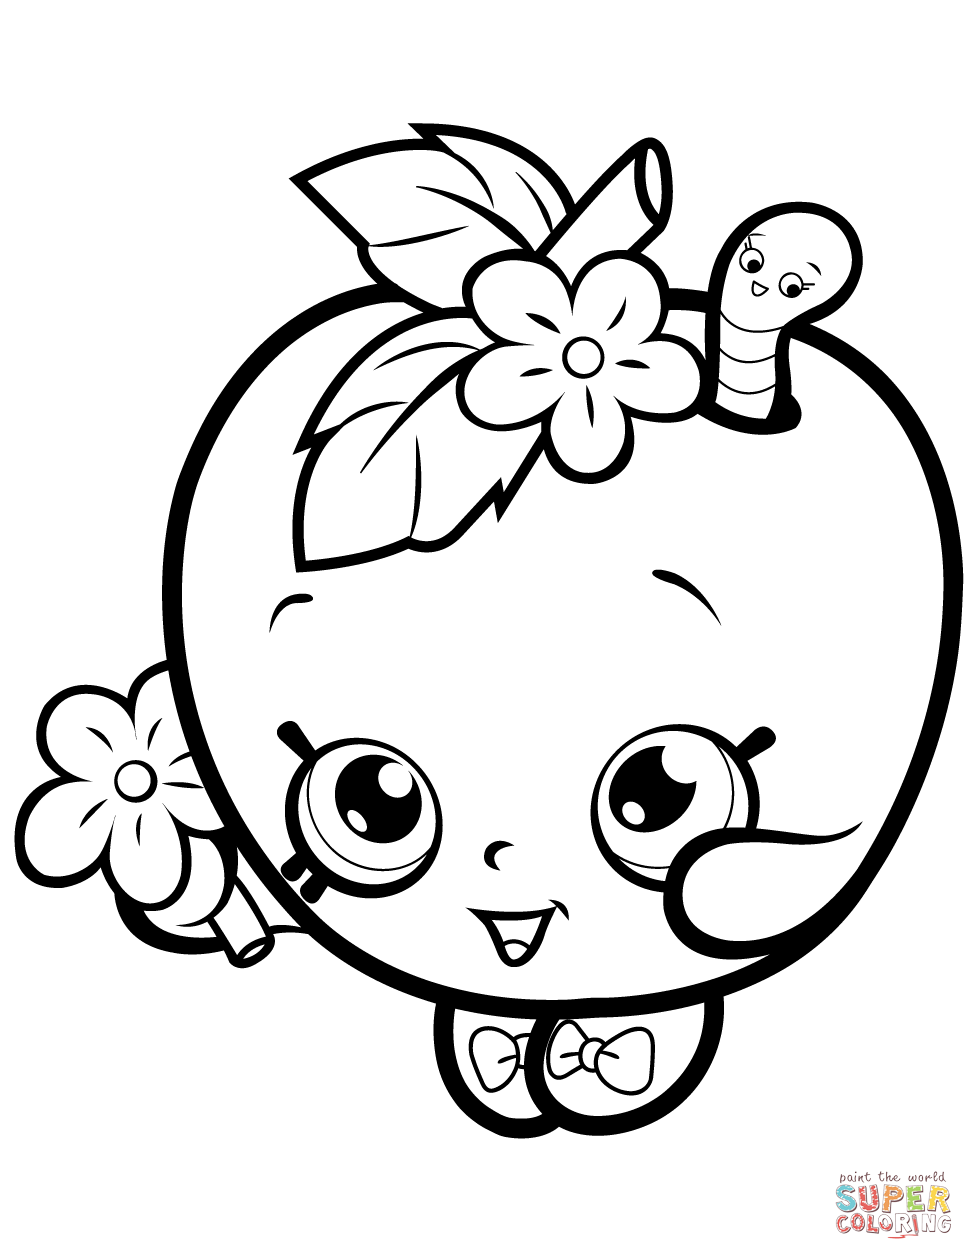 Apple Blossom Shopkin Coloring Page Free Printable Coloring Pages